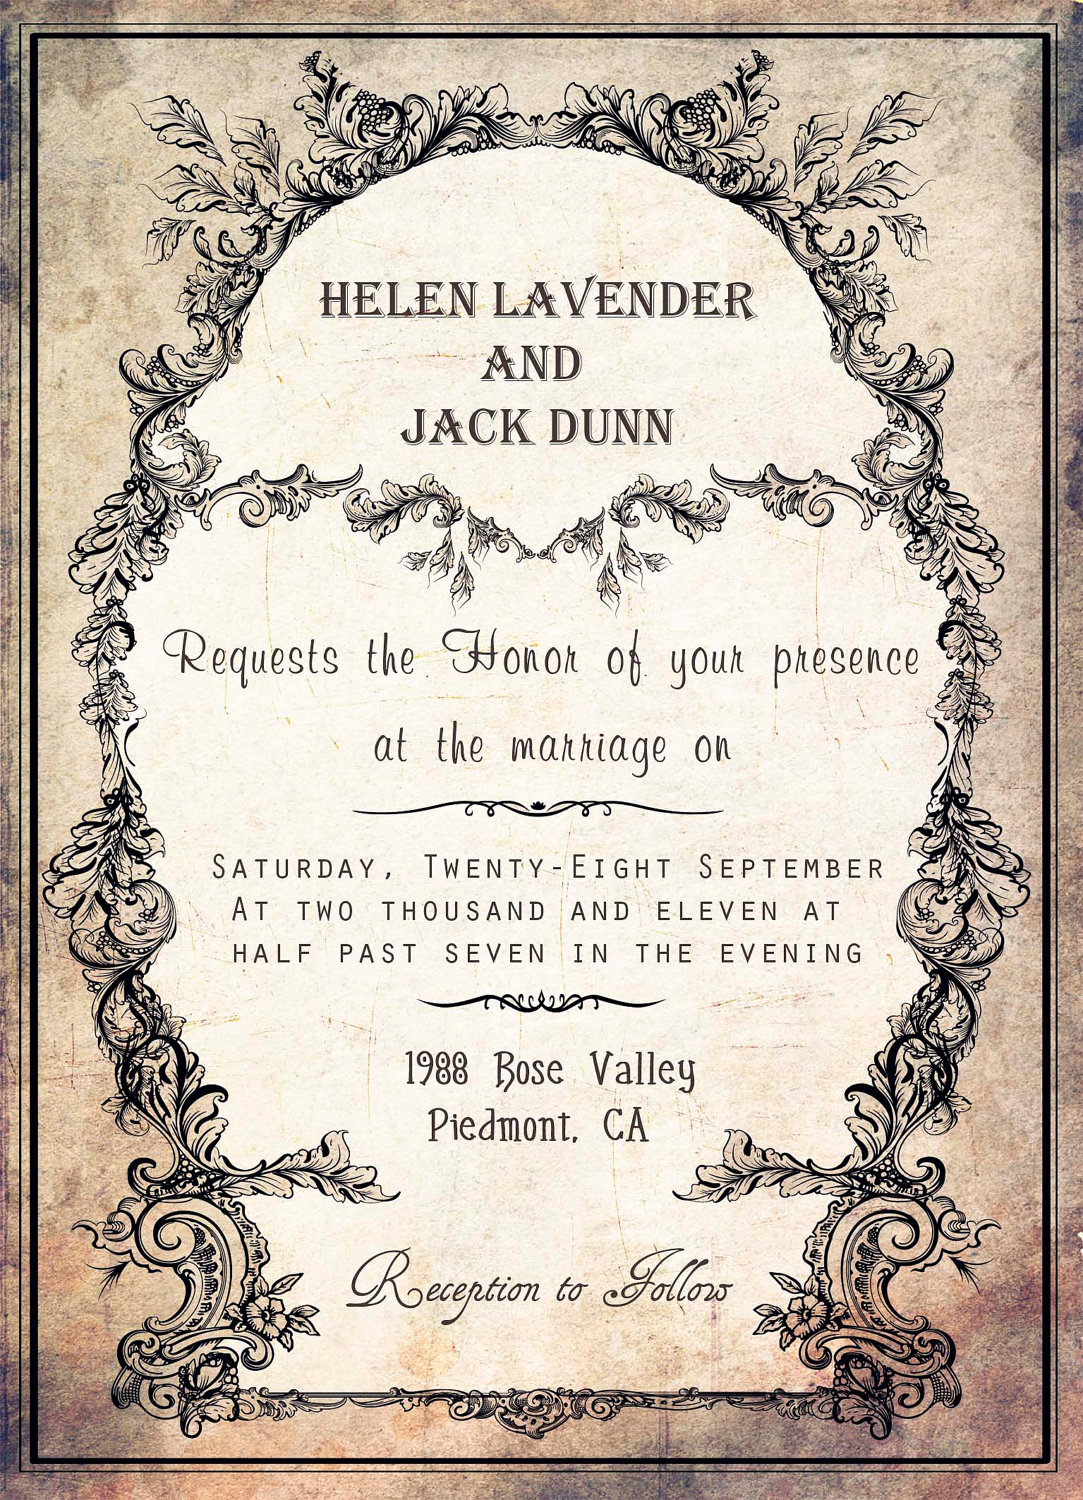 Wedding Invitation Template Peellandfmtk - Wedding invitation templates: wedding card invitation templates free download